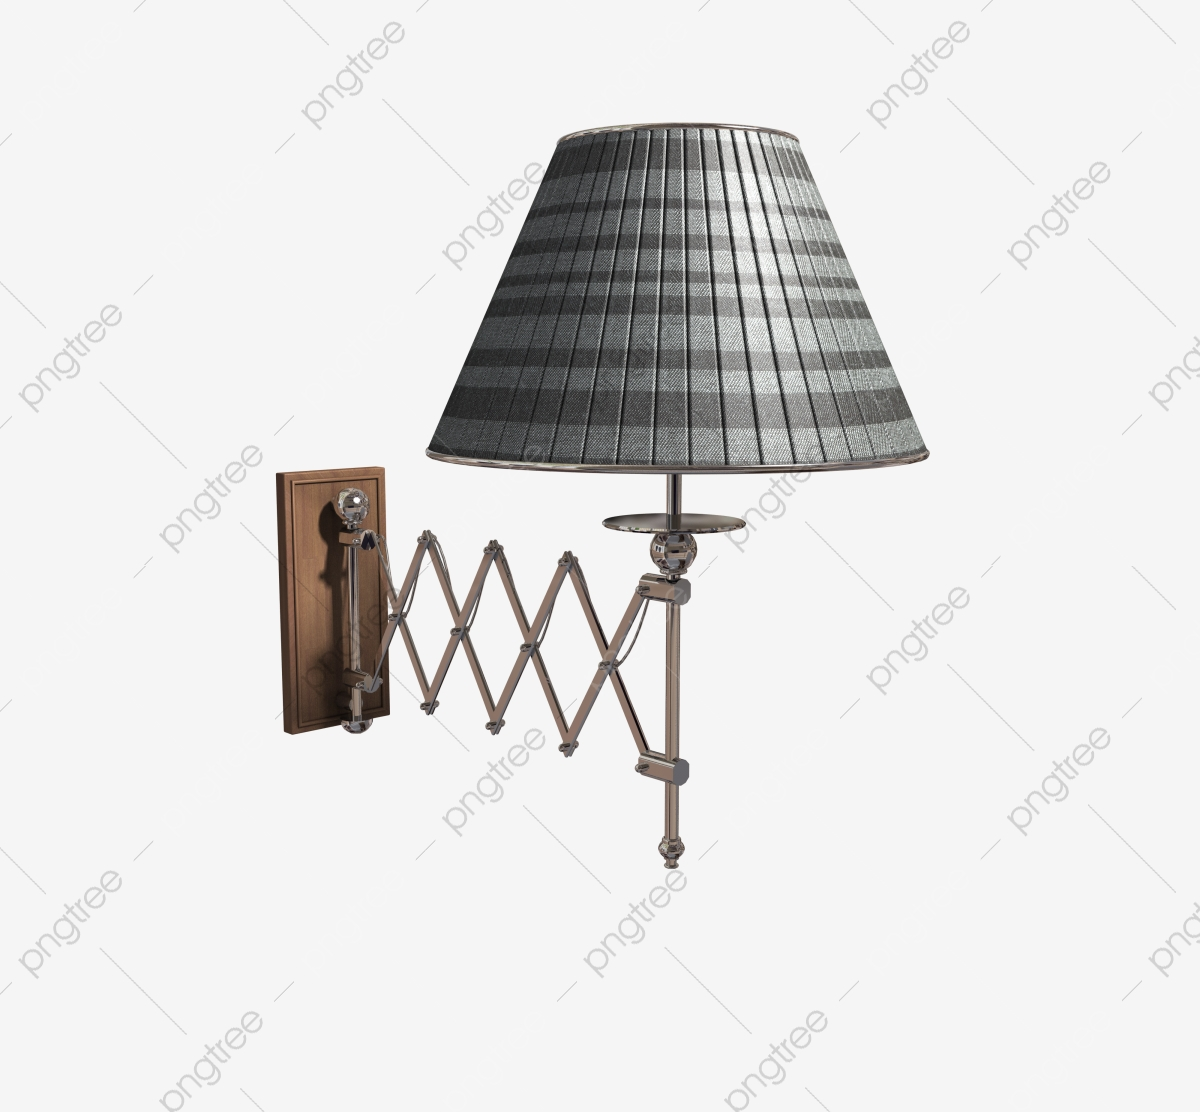 Modern Home Wall Hanging Bedside Lamp Modern Home Wall Hanging Png Transparent Clipart Image And Psd File For Free Download